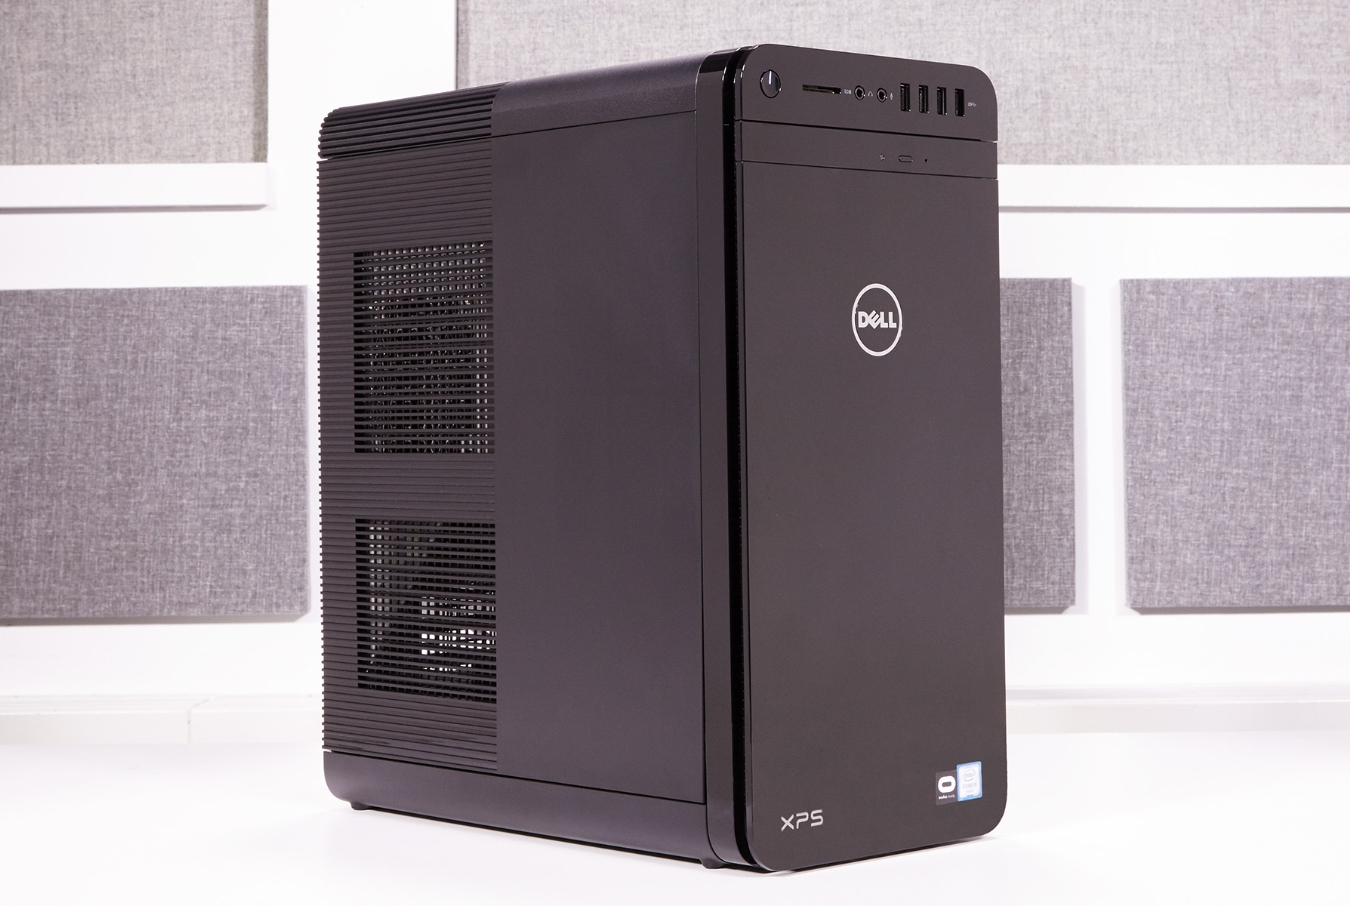 Dell Xps Tower Special Edition Review Simple Meets Powerful 41847 on dell xps 8900